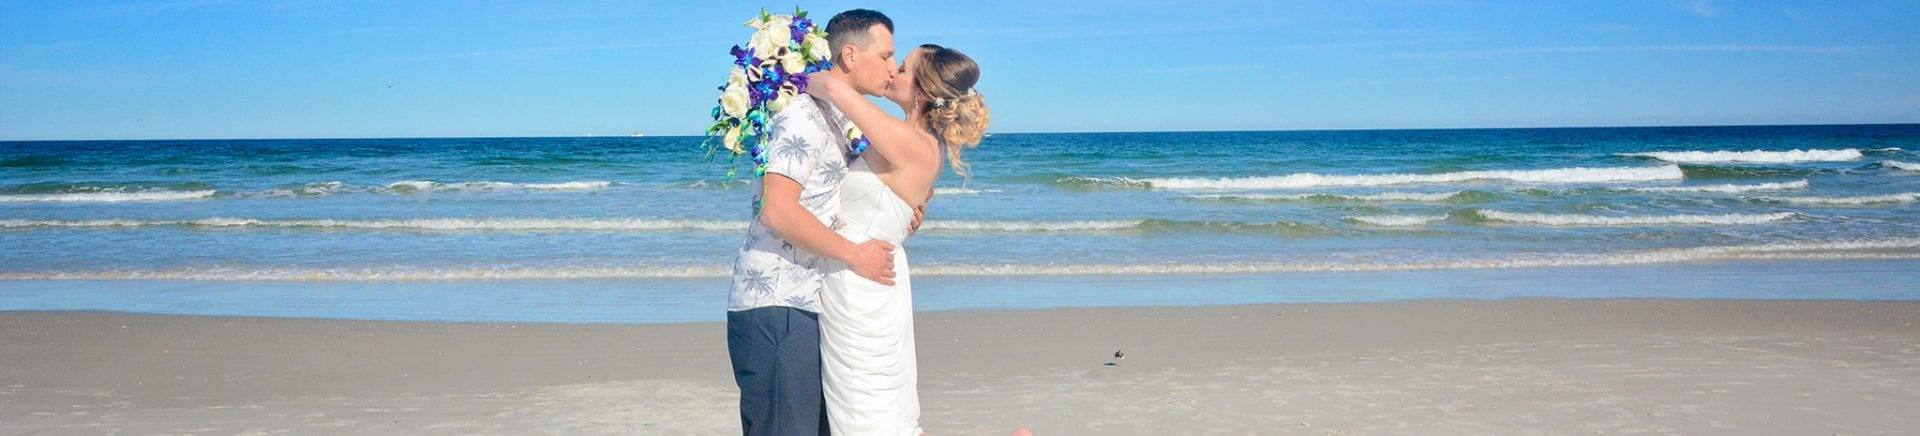 Wedding couple kissing on Daytona Beach Florida